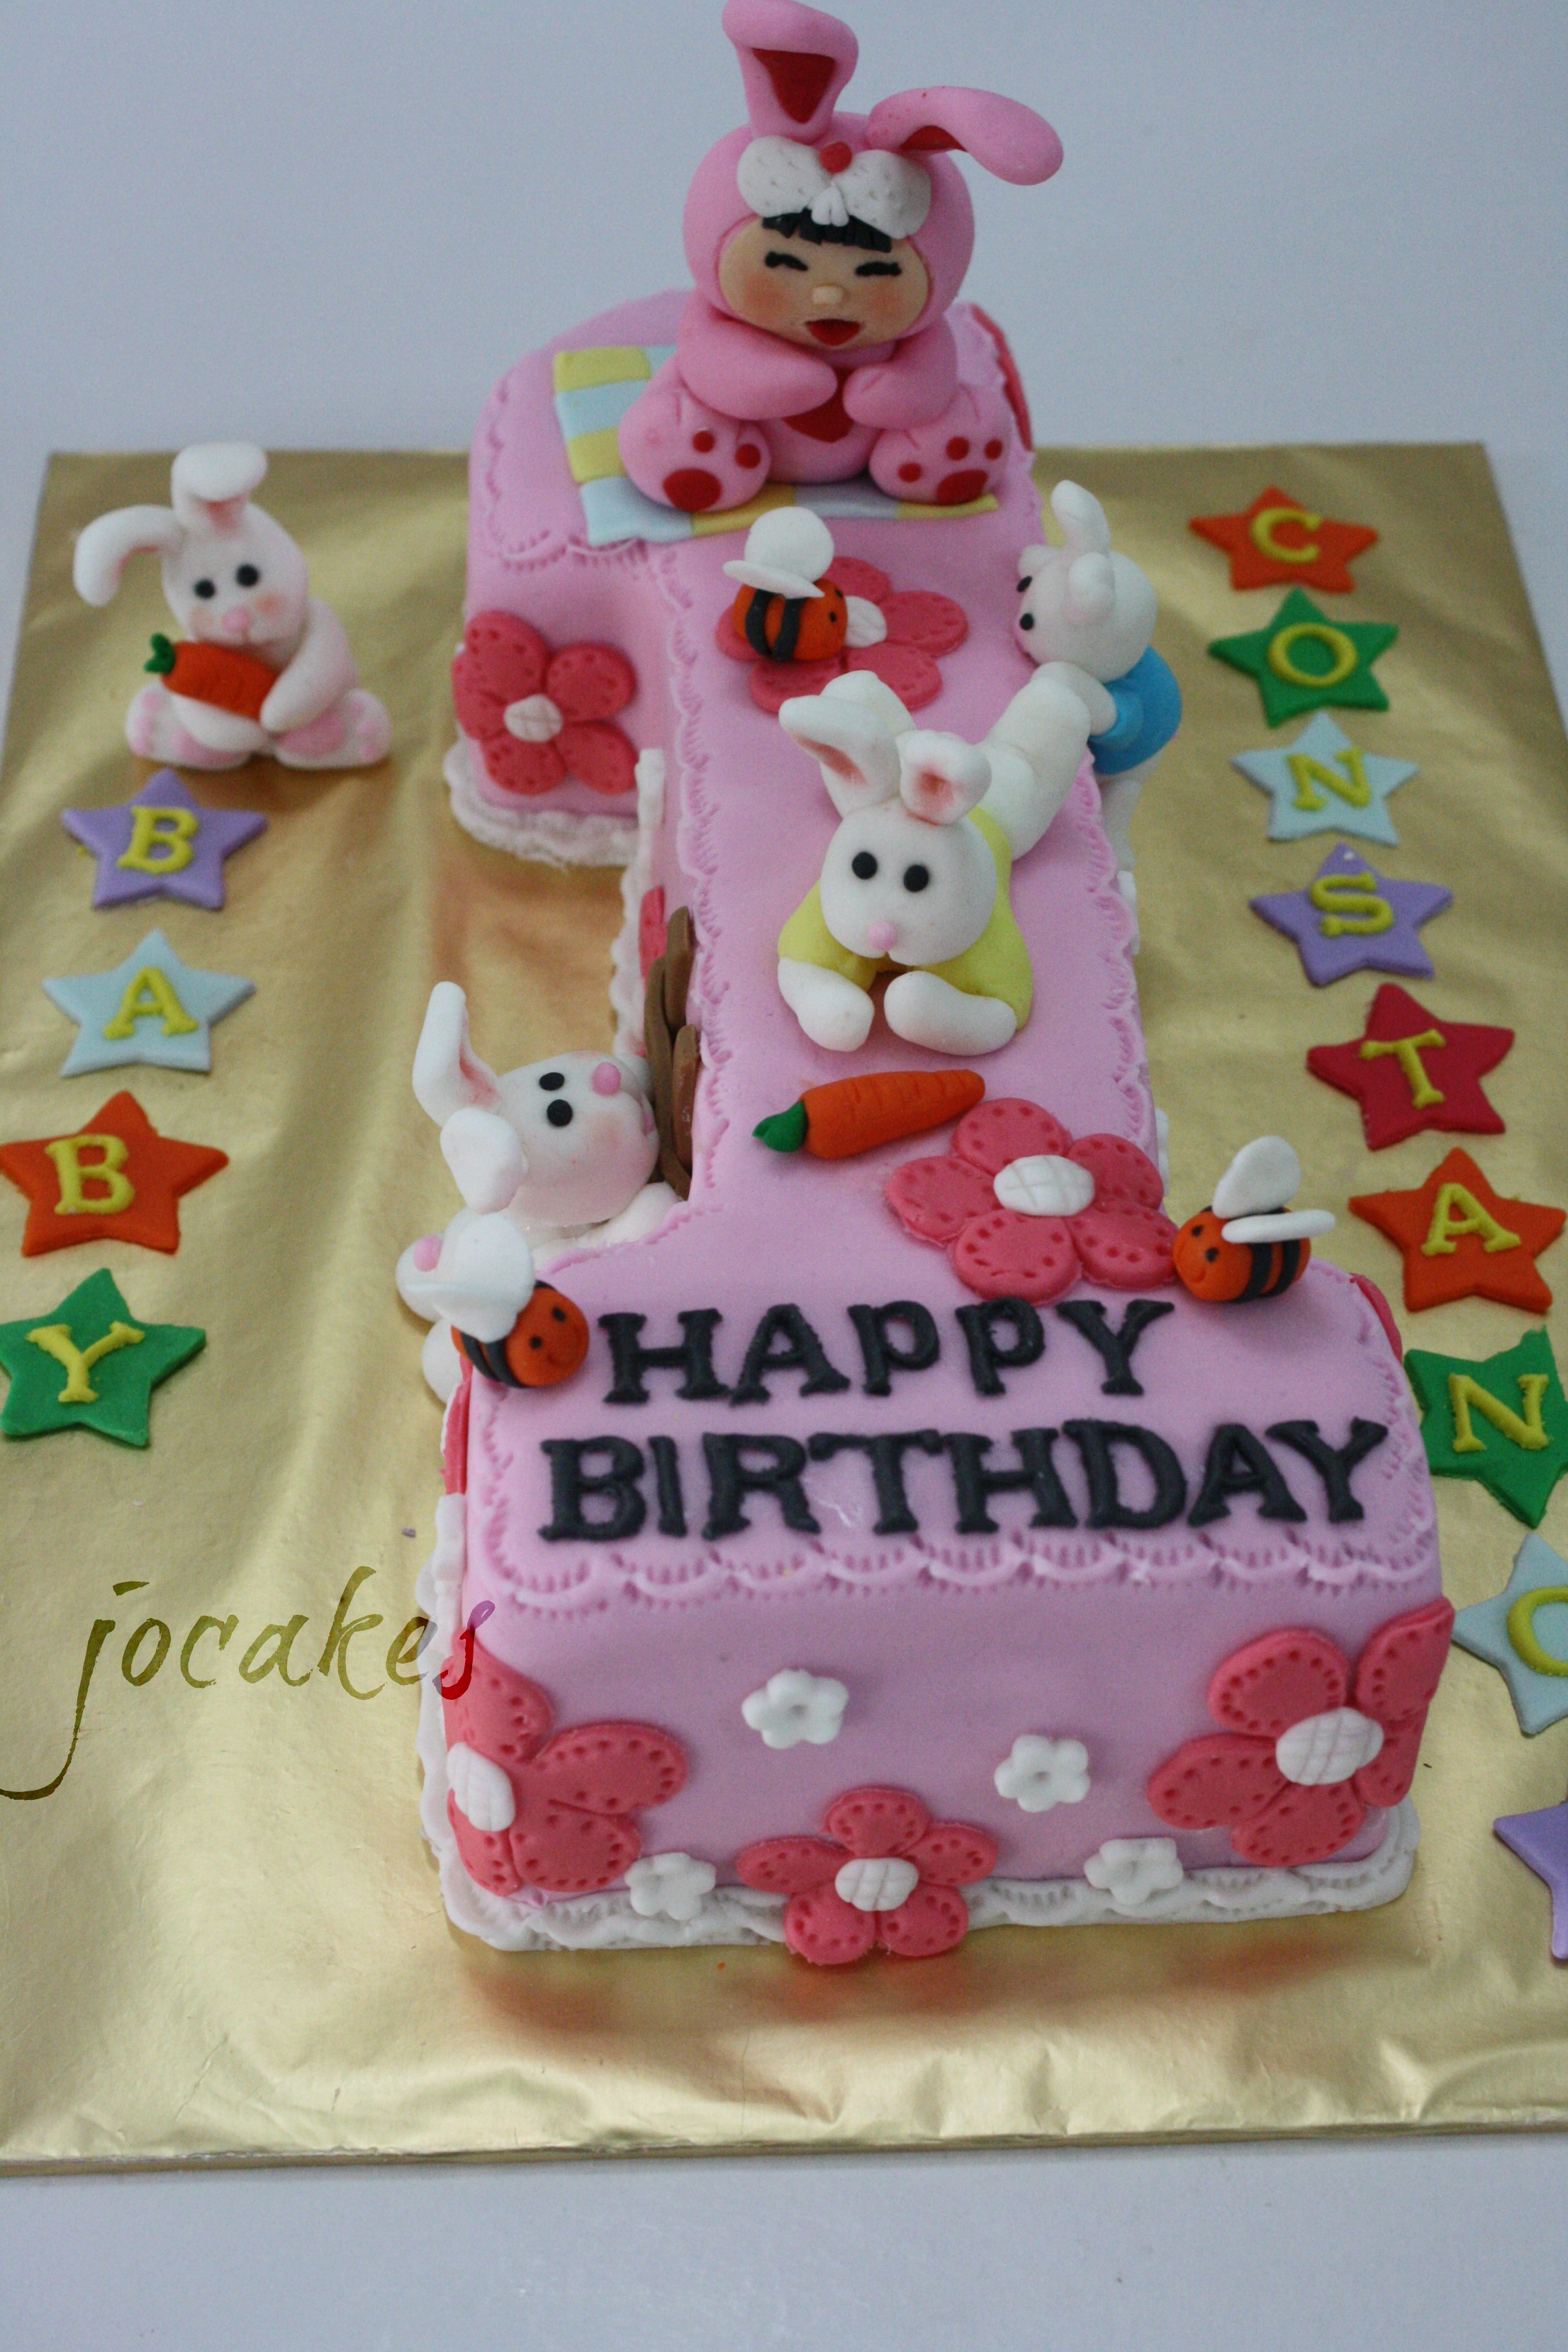 1 Year Old Birthday Cakes For Babies